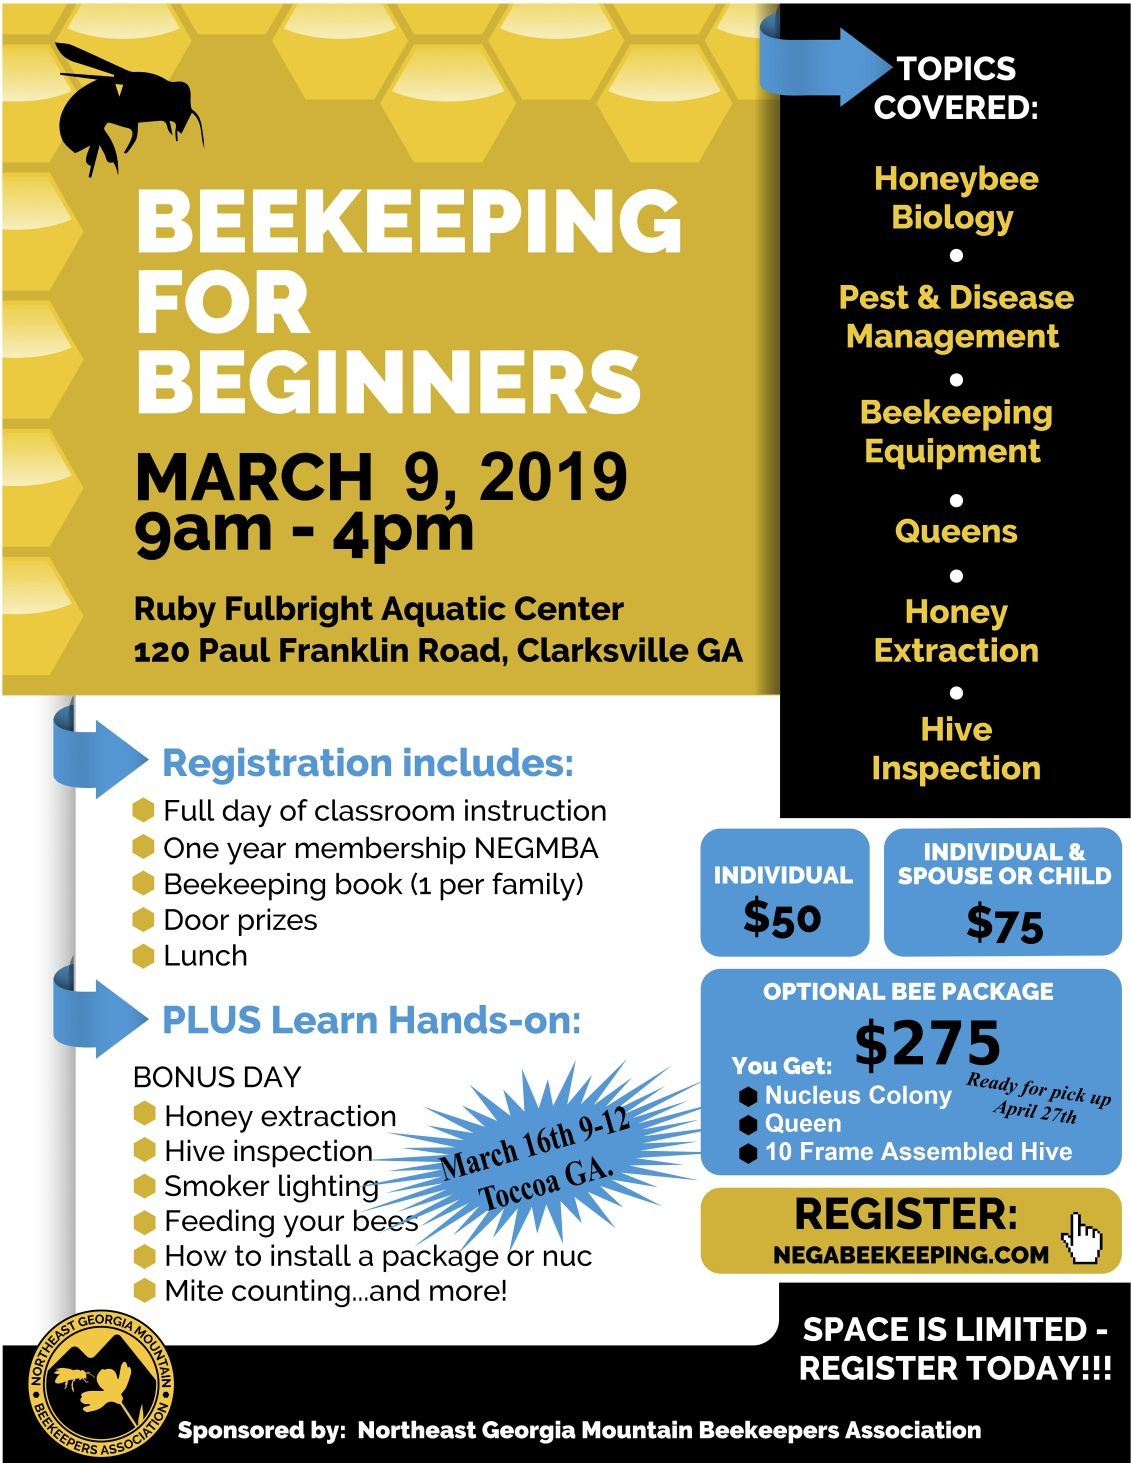 Beekeeping For Beginners @ Beekeeping For Beginners